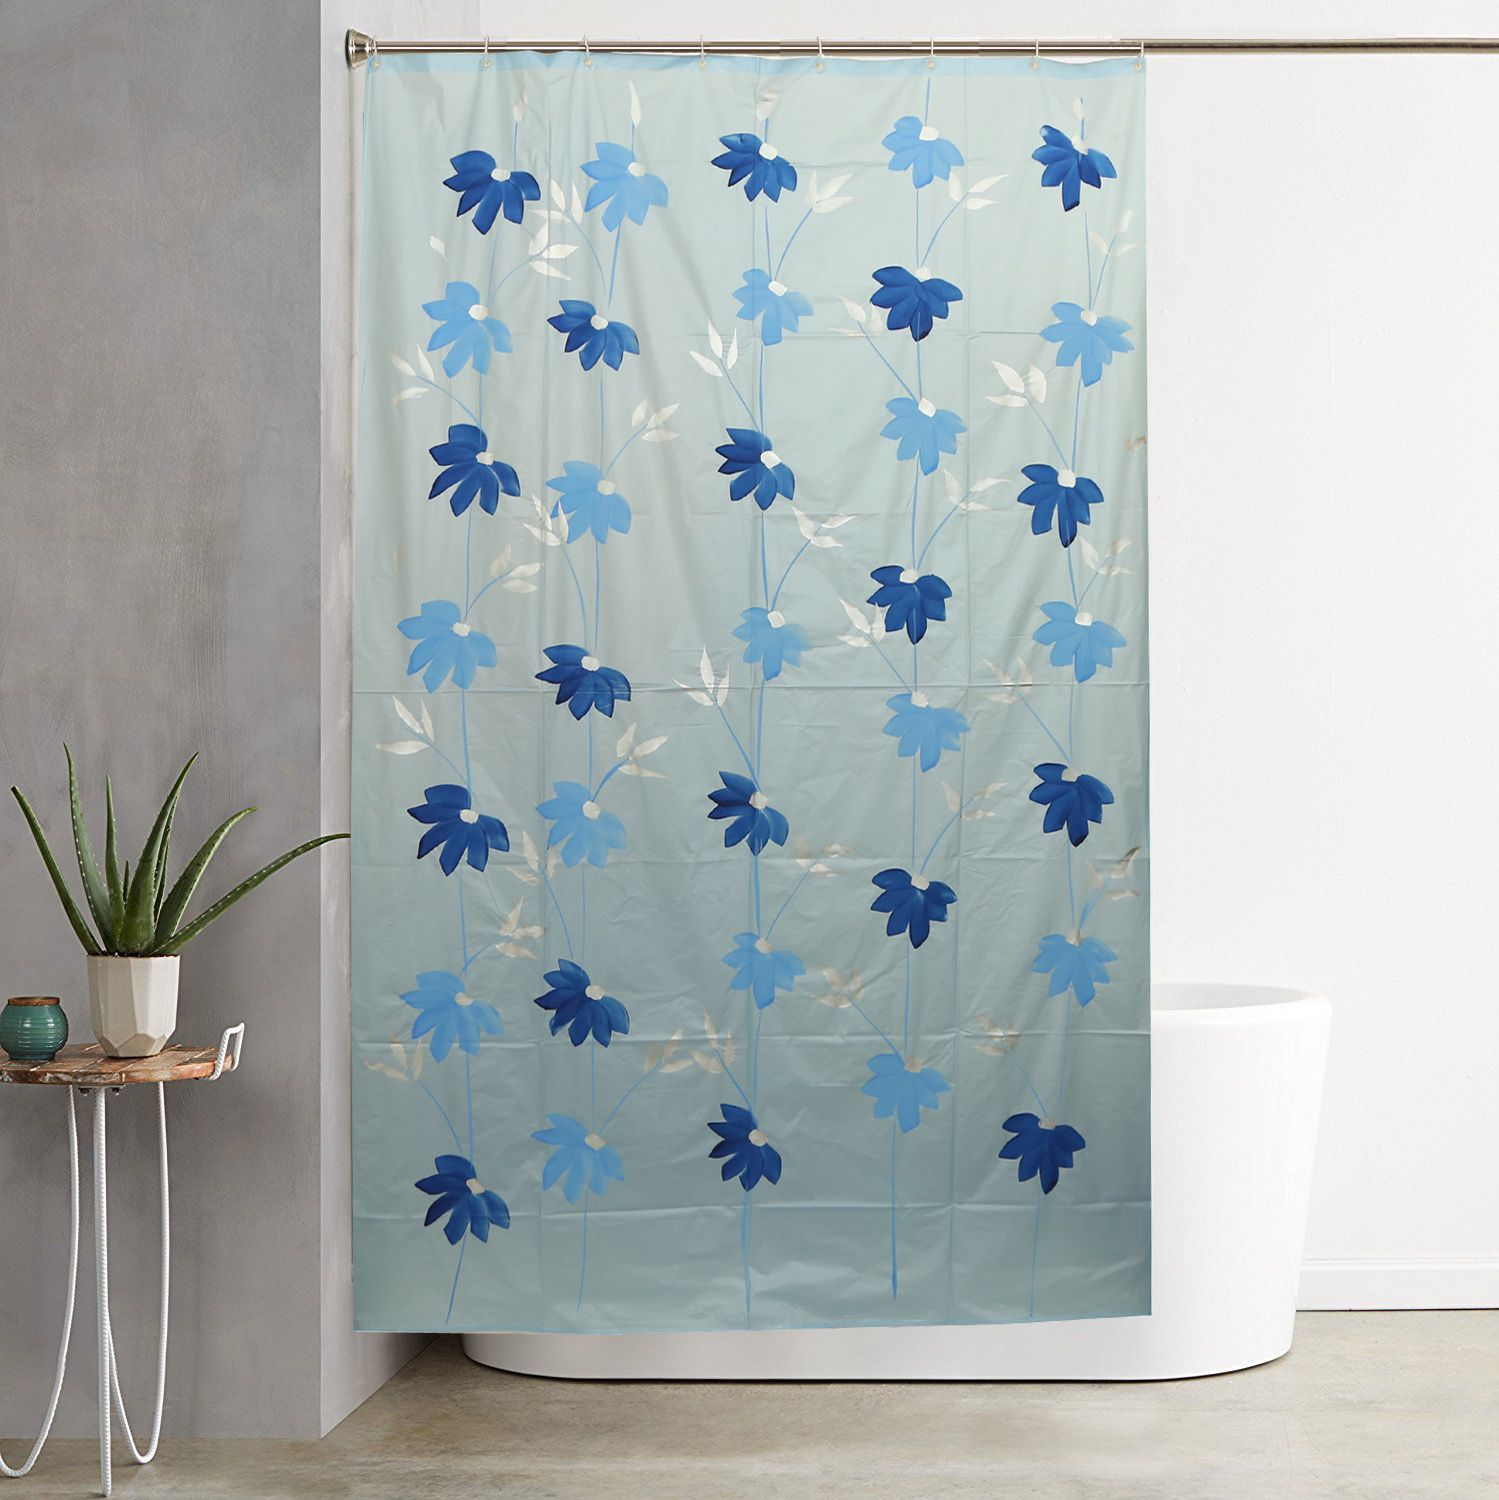 Kuber Industries™ SkyBlue Floral Design PVC Premium Shower Curtain - 7 Feet - Pack of 2 Pcs 84*54 Inches- 8 Hooks (SHWC010)